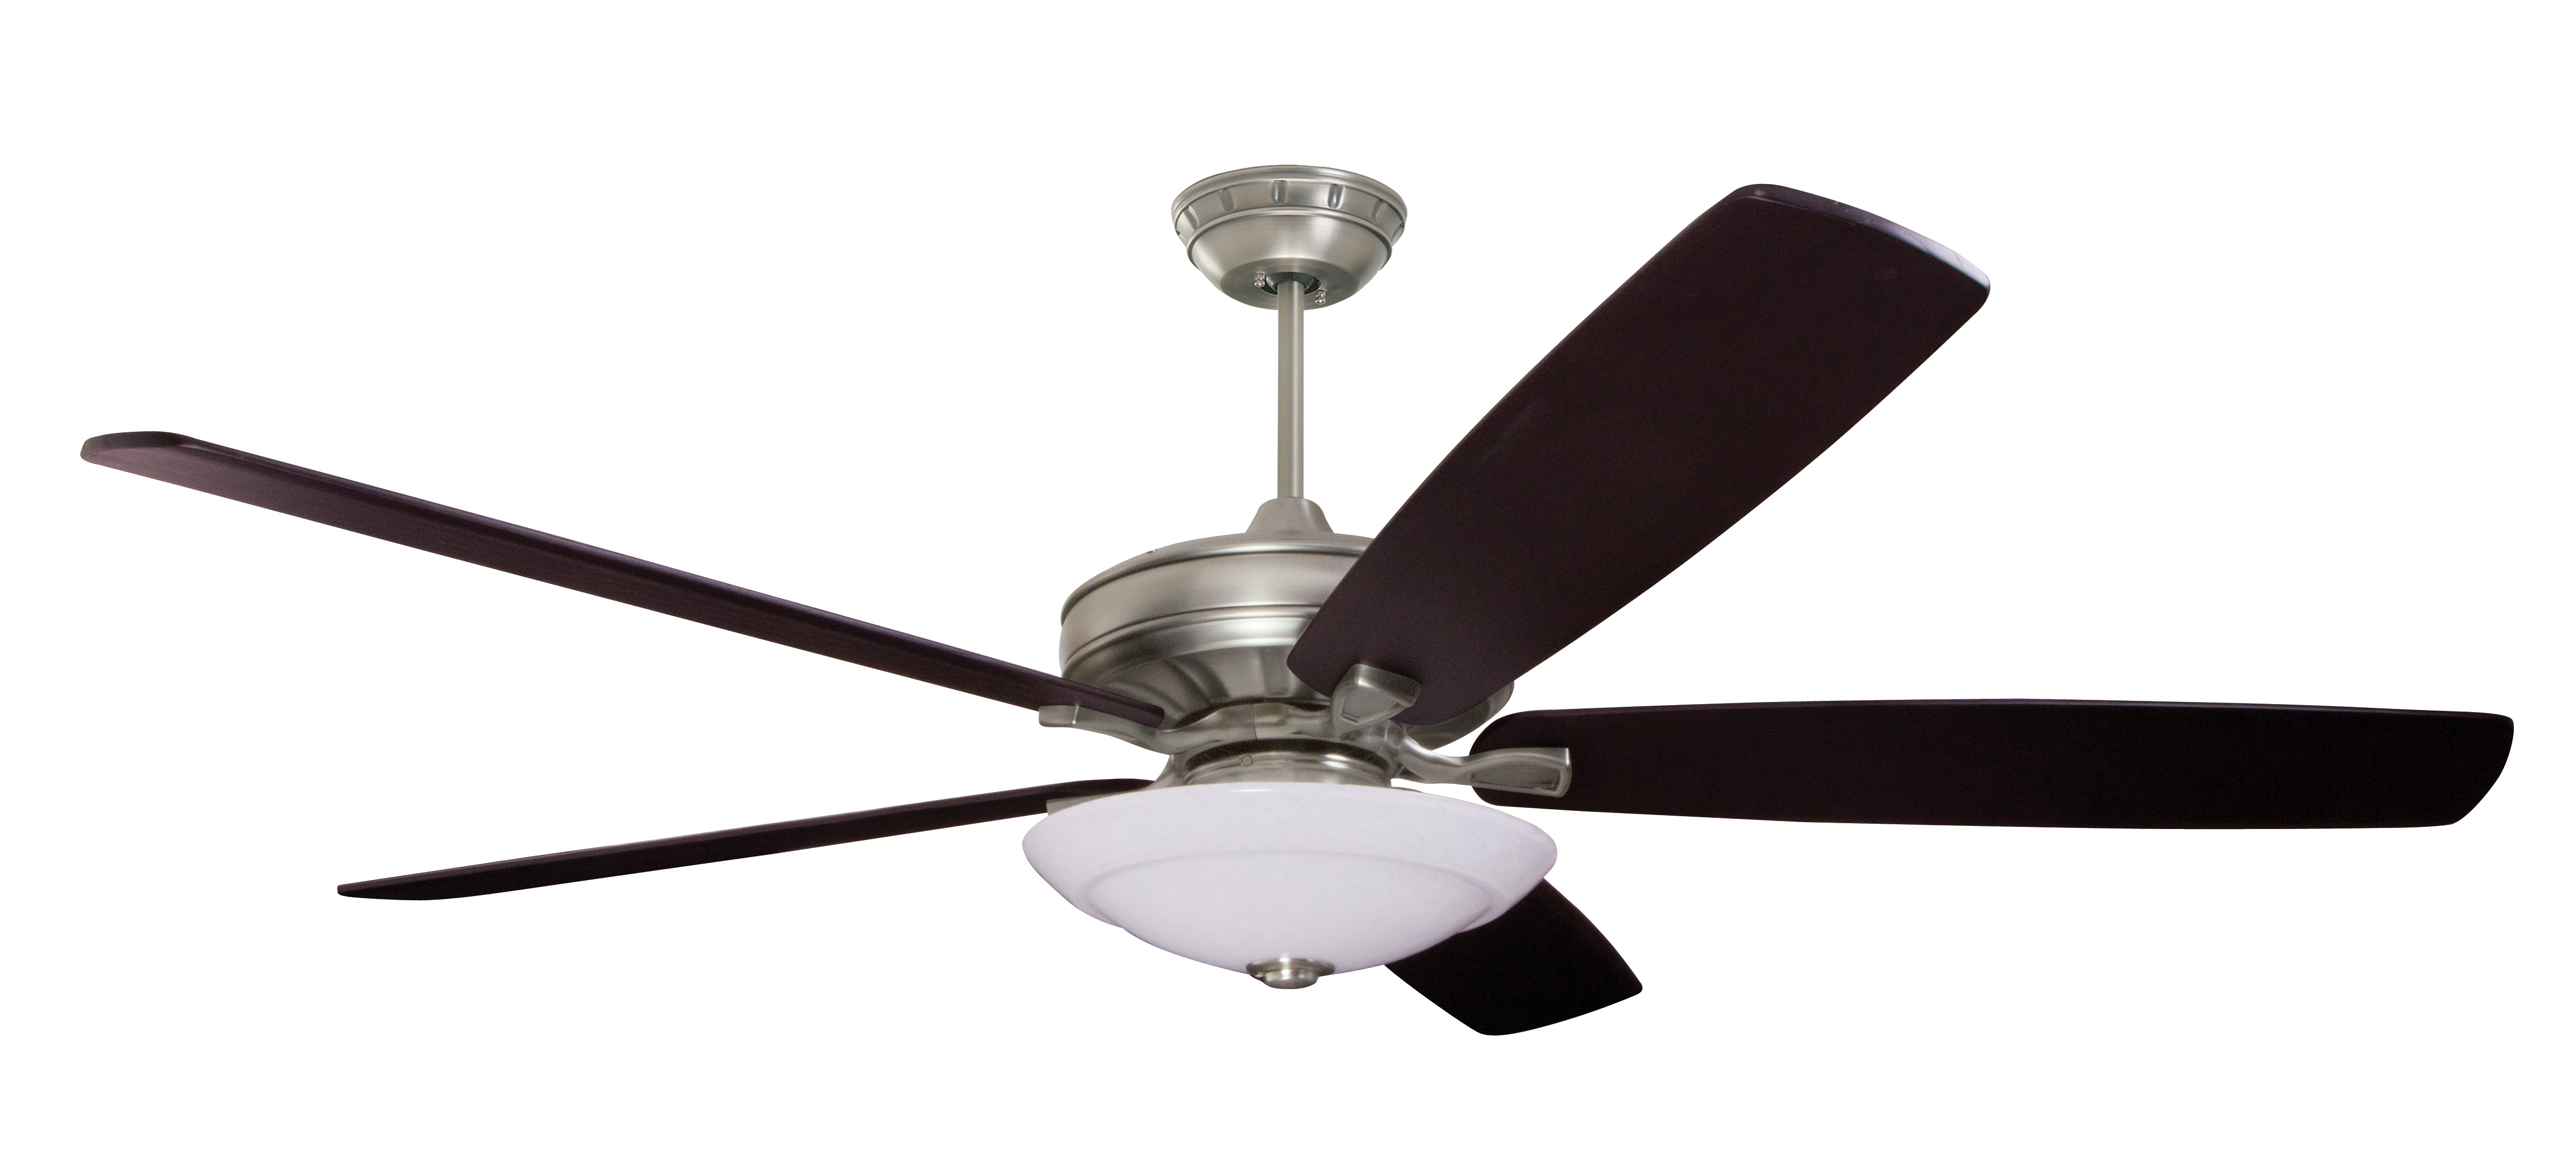 ceiling bronze light sandstone rubbed fixture capitol in image shown fan and lighting vintage oil cfm emerson kit finish glass item magnifying